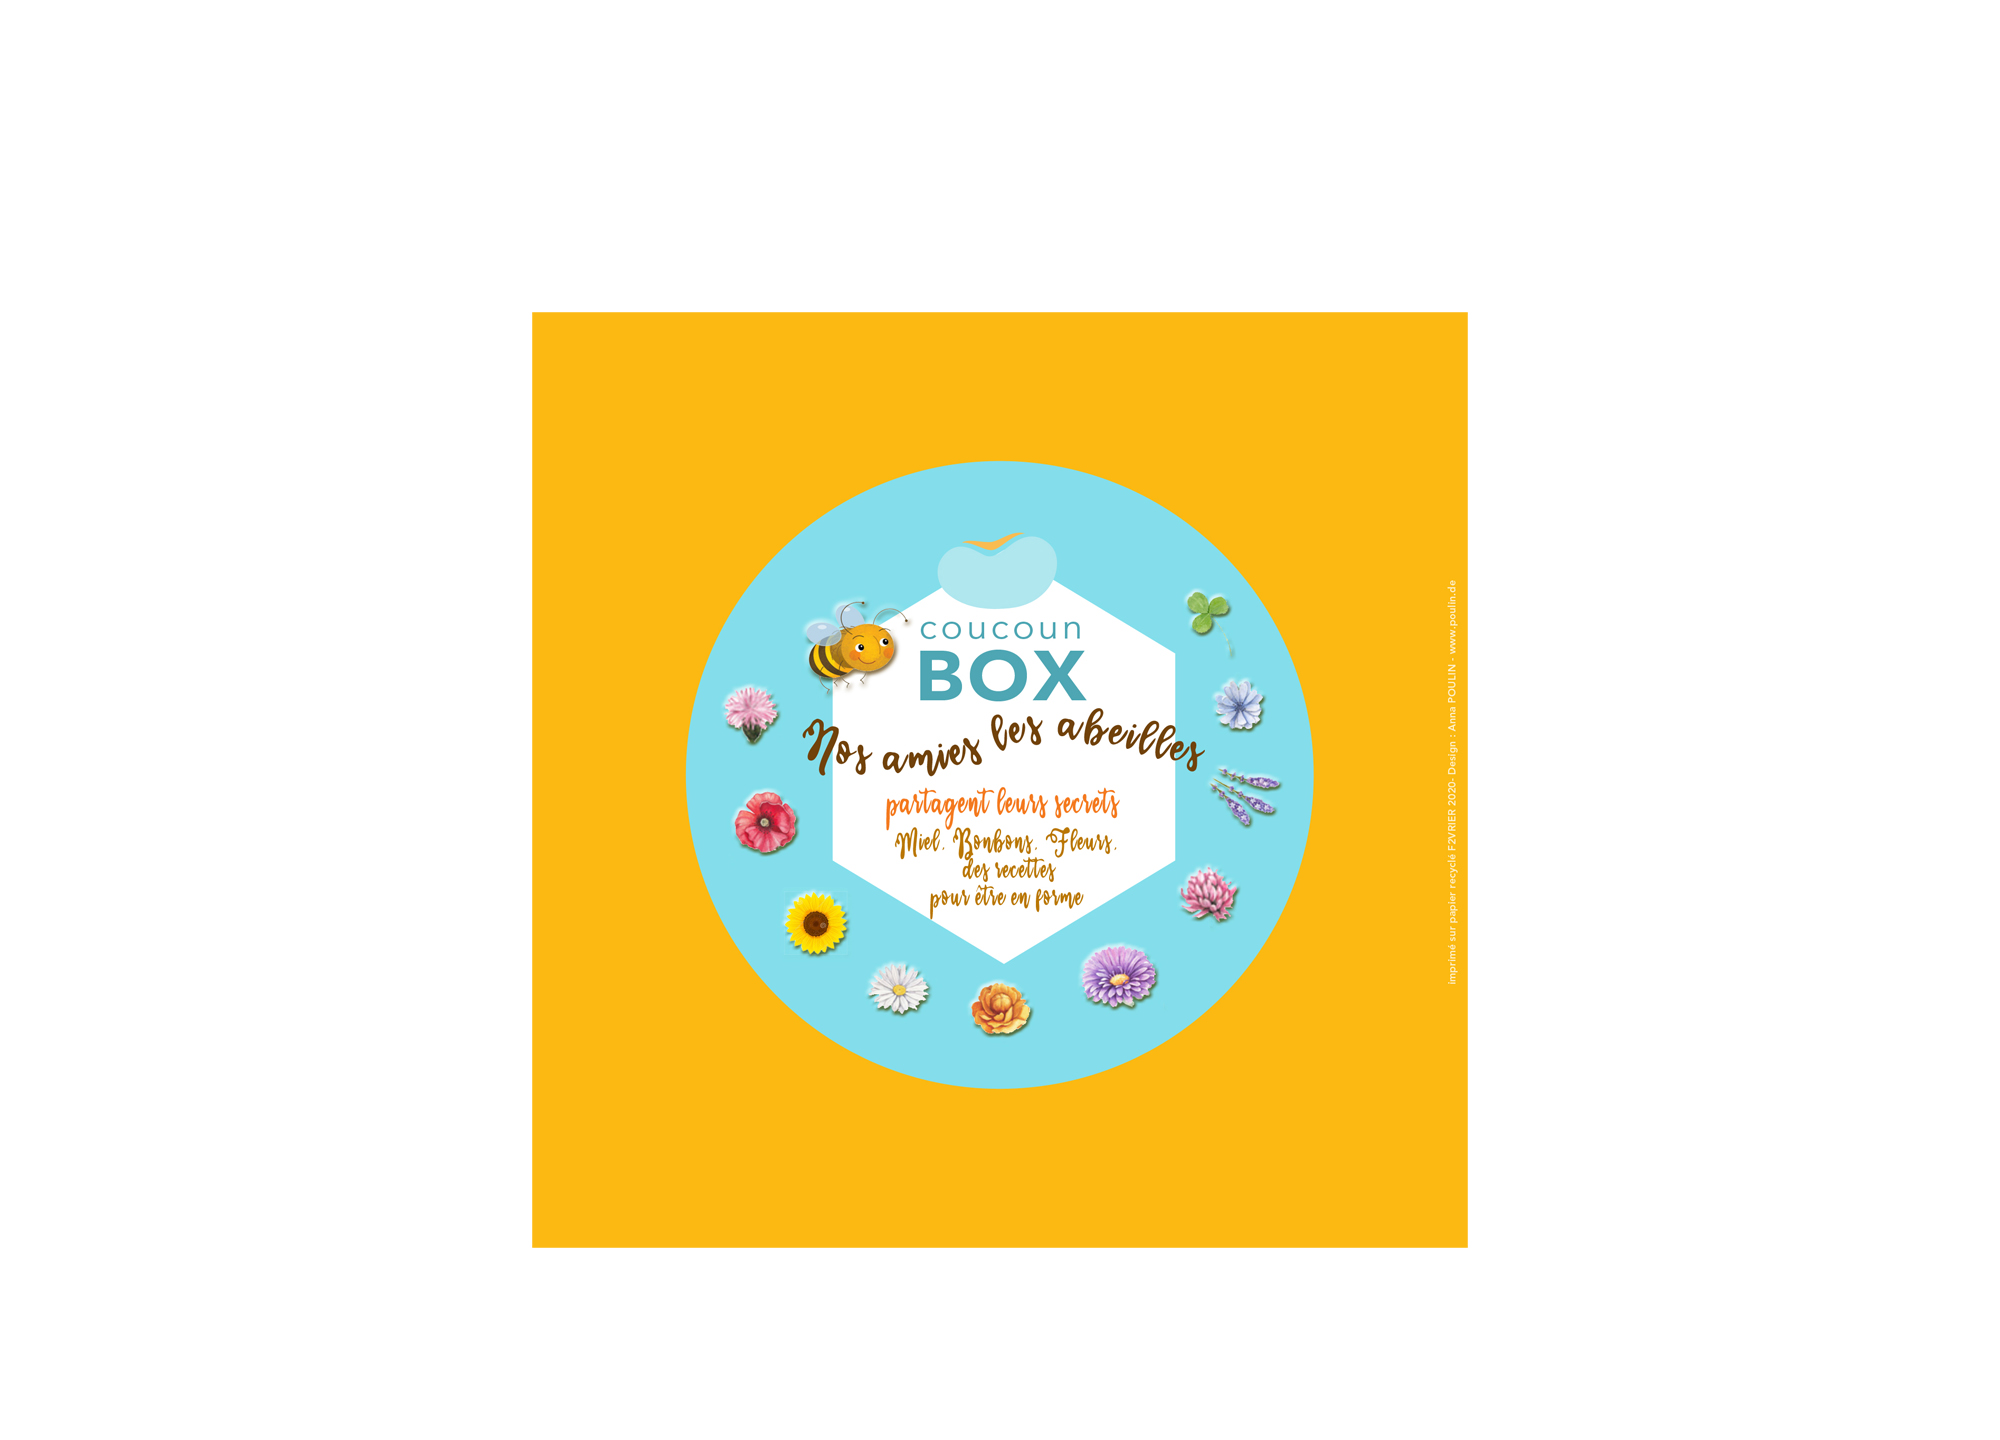 coucoun box abeille - Anna POULIN